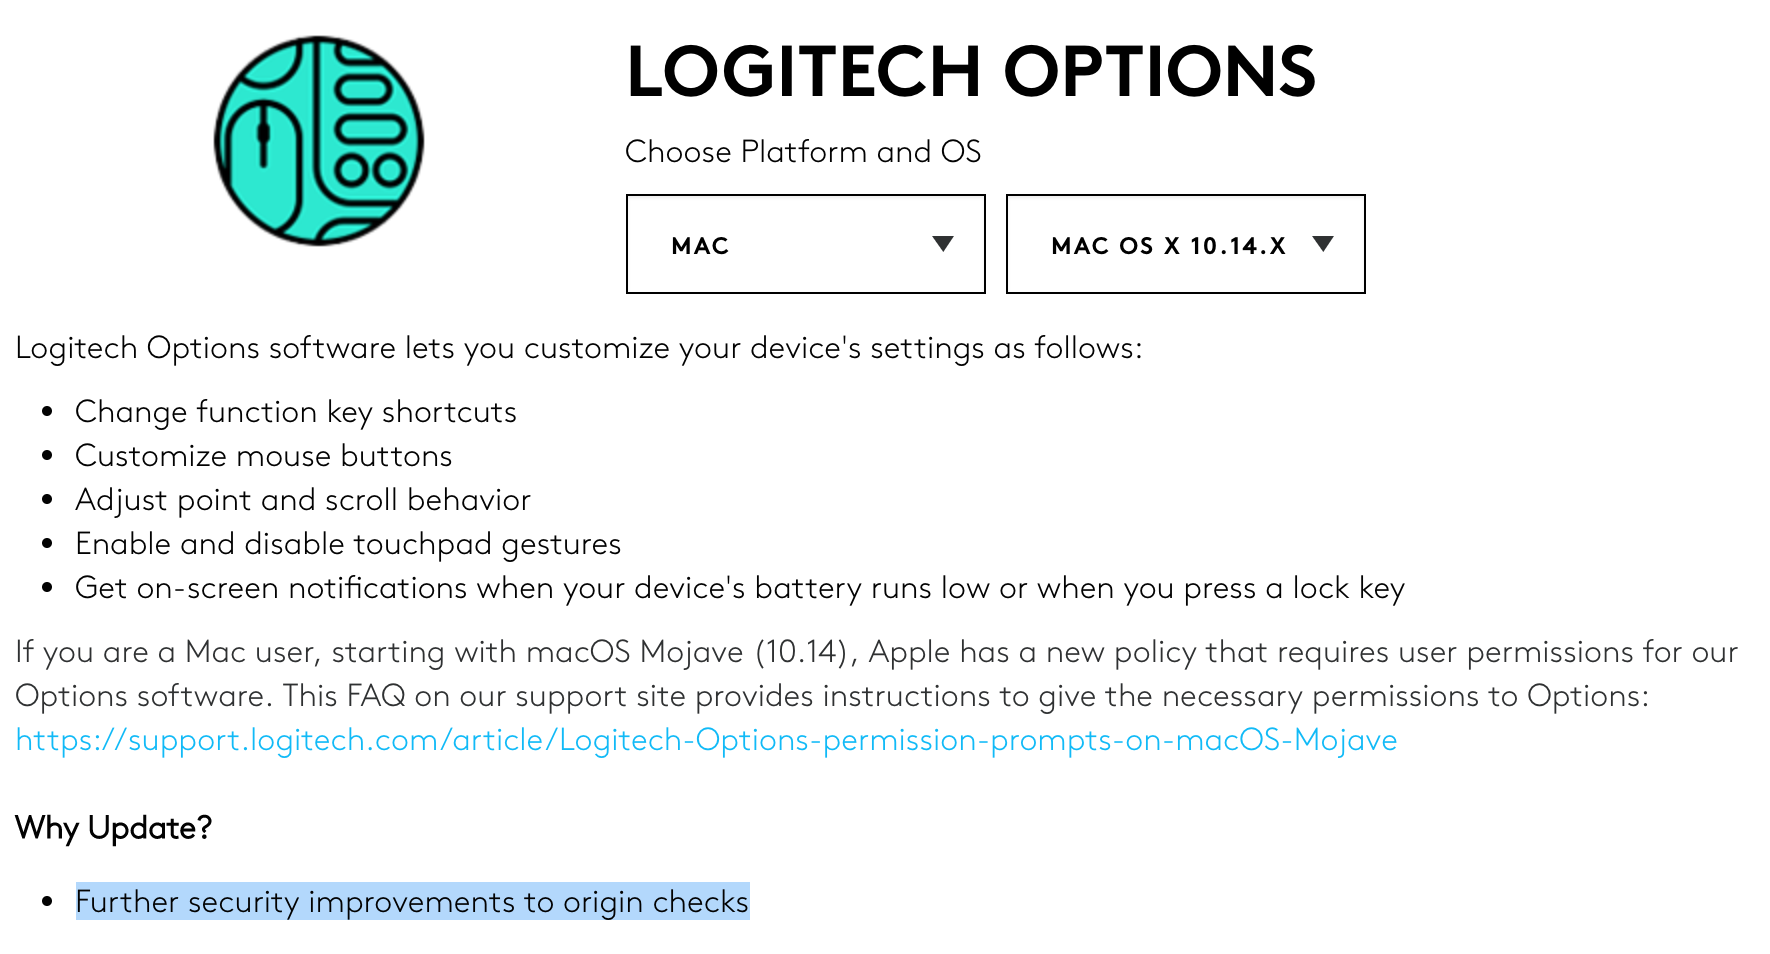 Dissecting Logitech Options on macOS